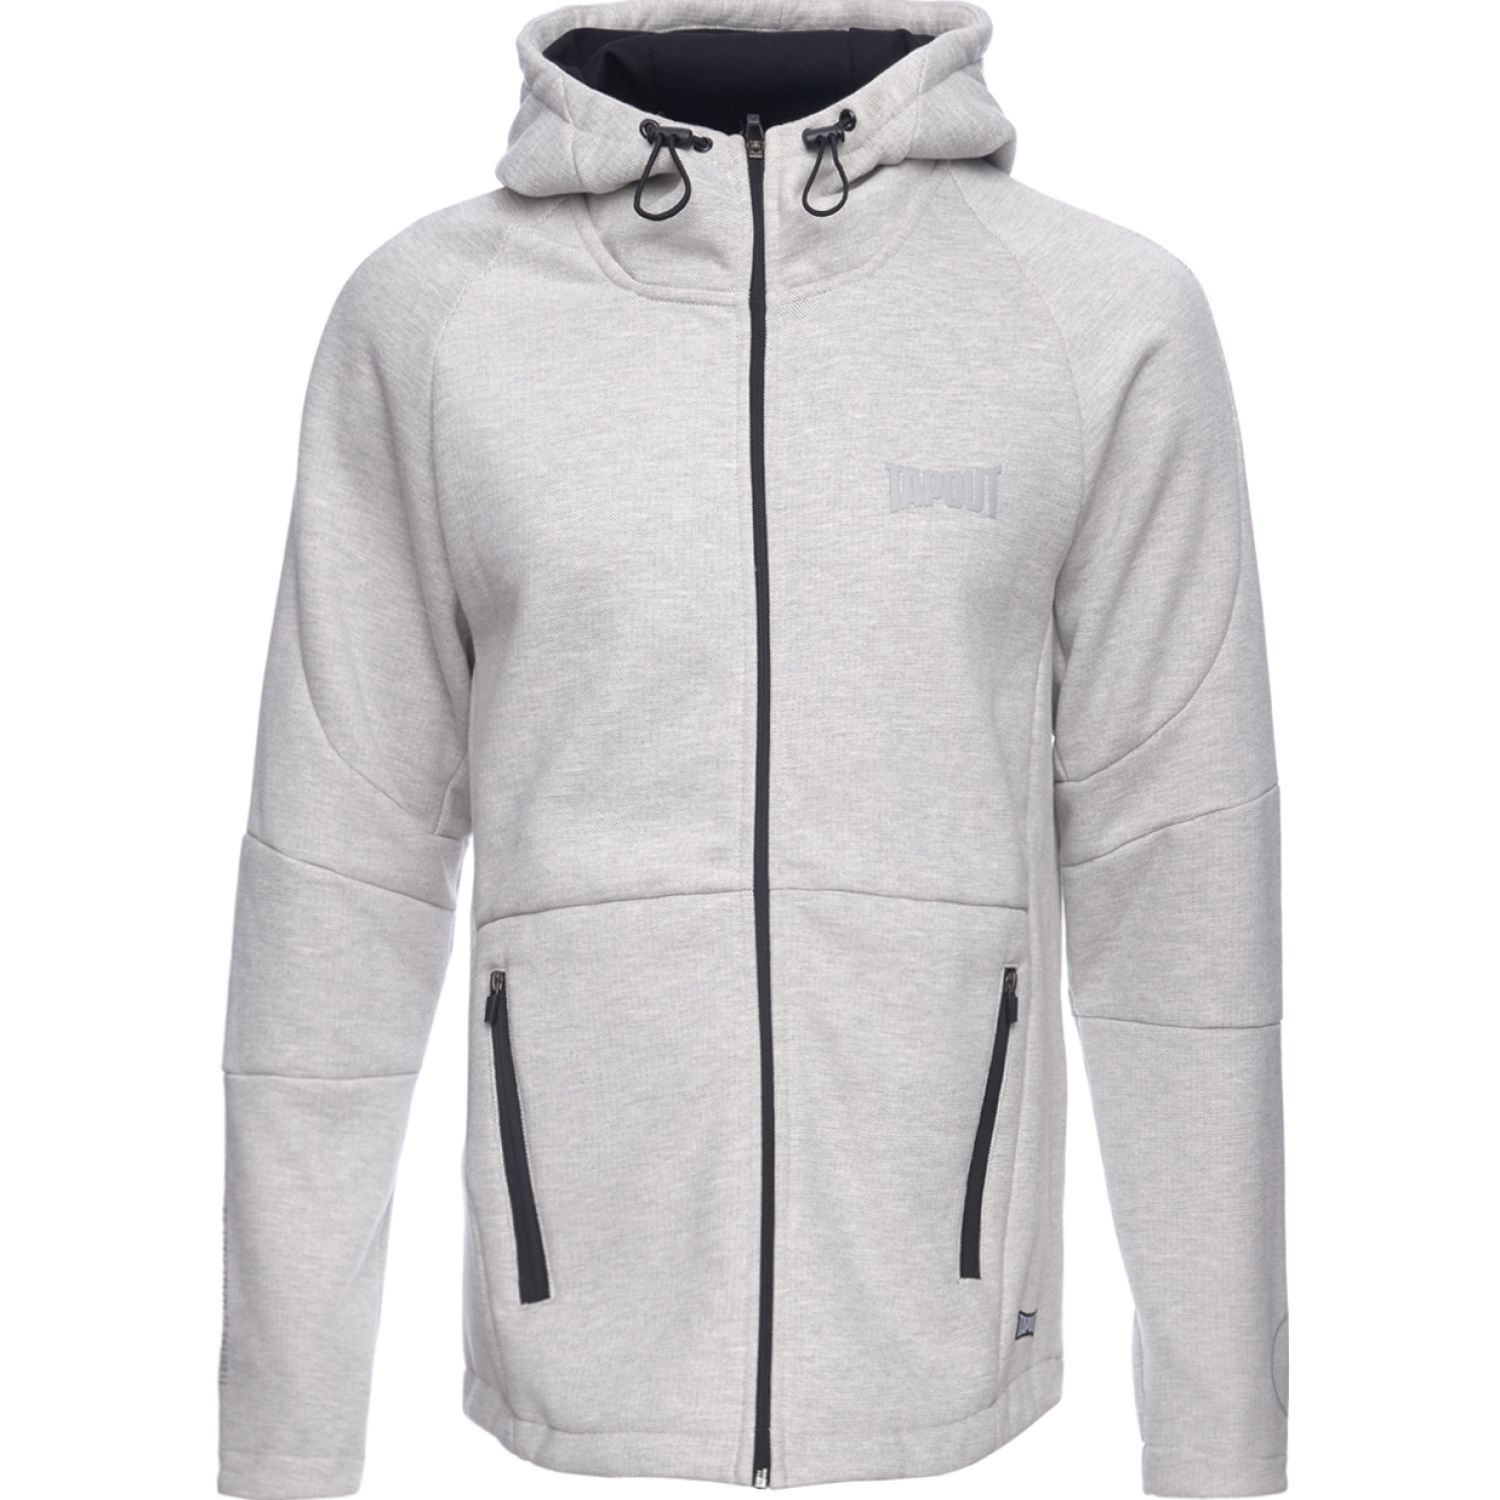 TAPOUT POLERA CASUAL STRIKE ALGODÓN Plata Hoodies y Sweaters Fashion